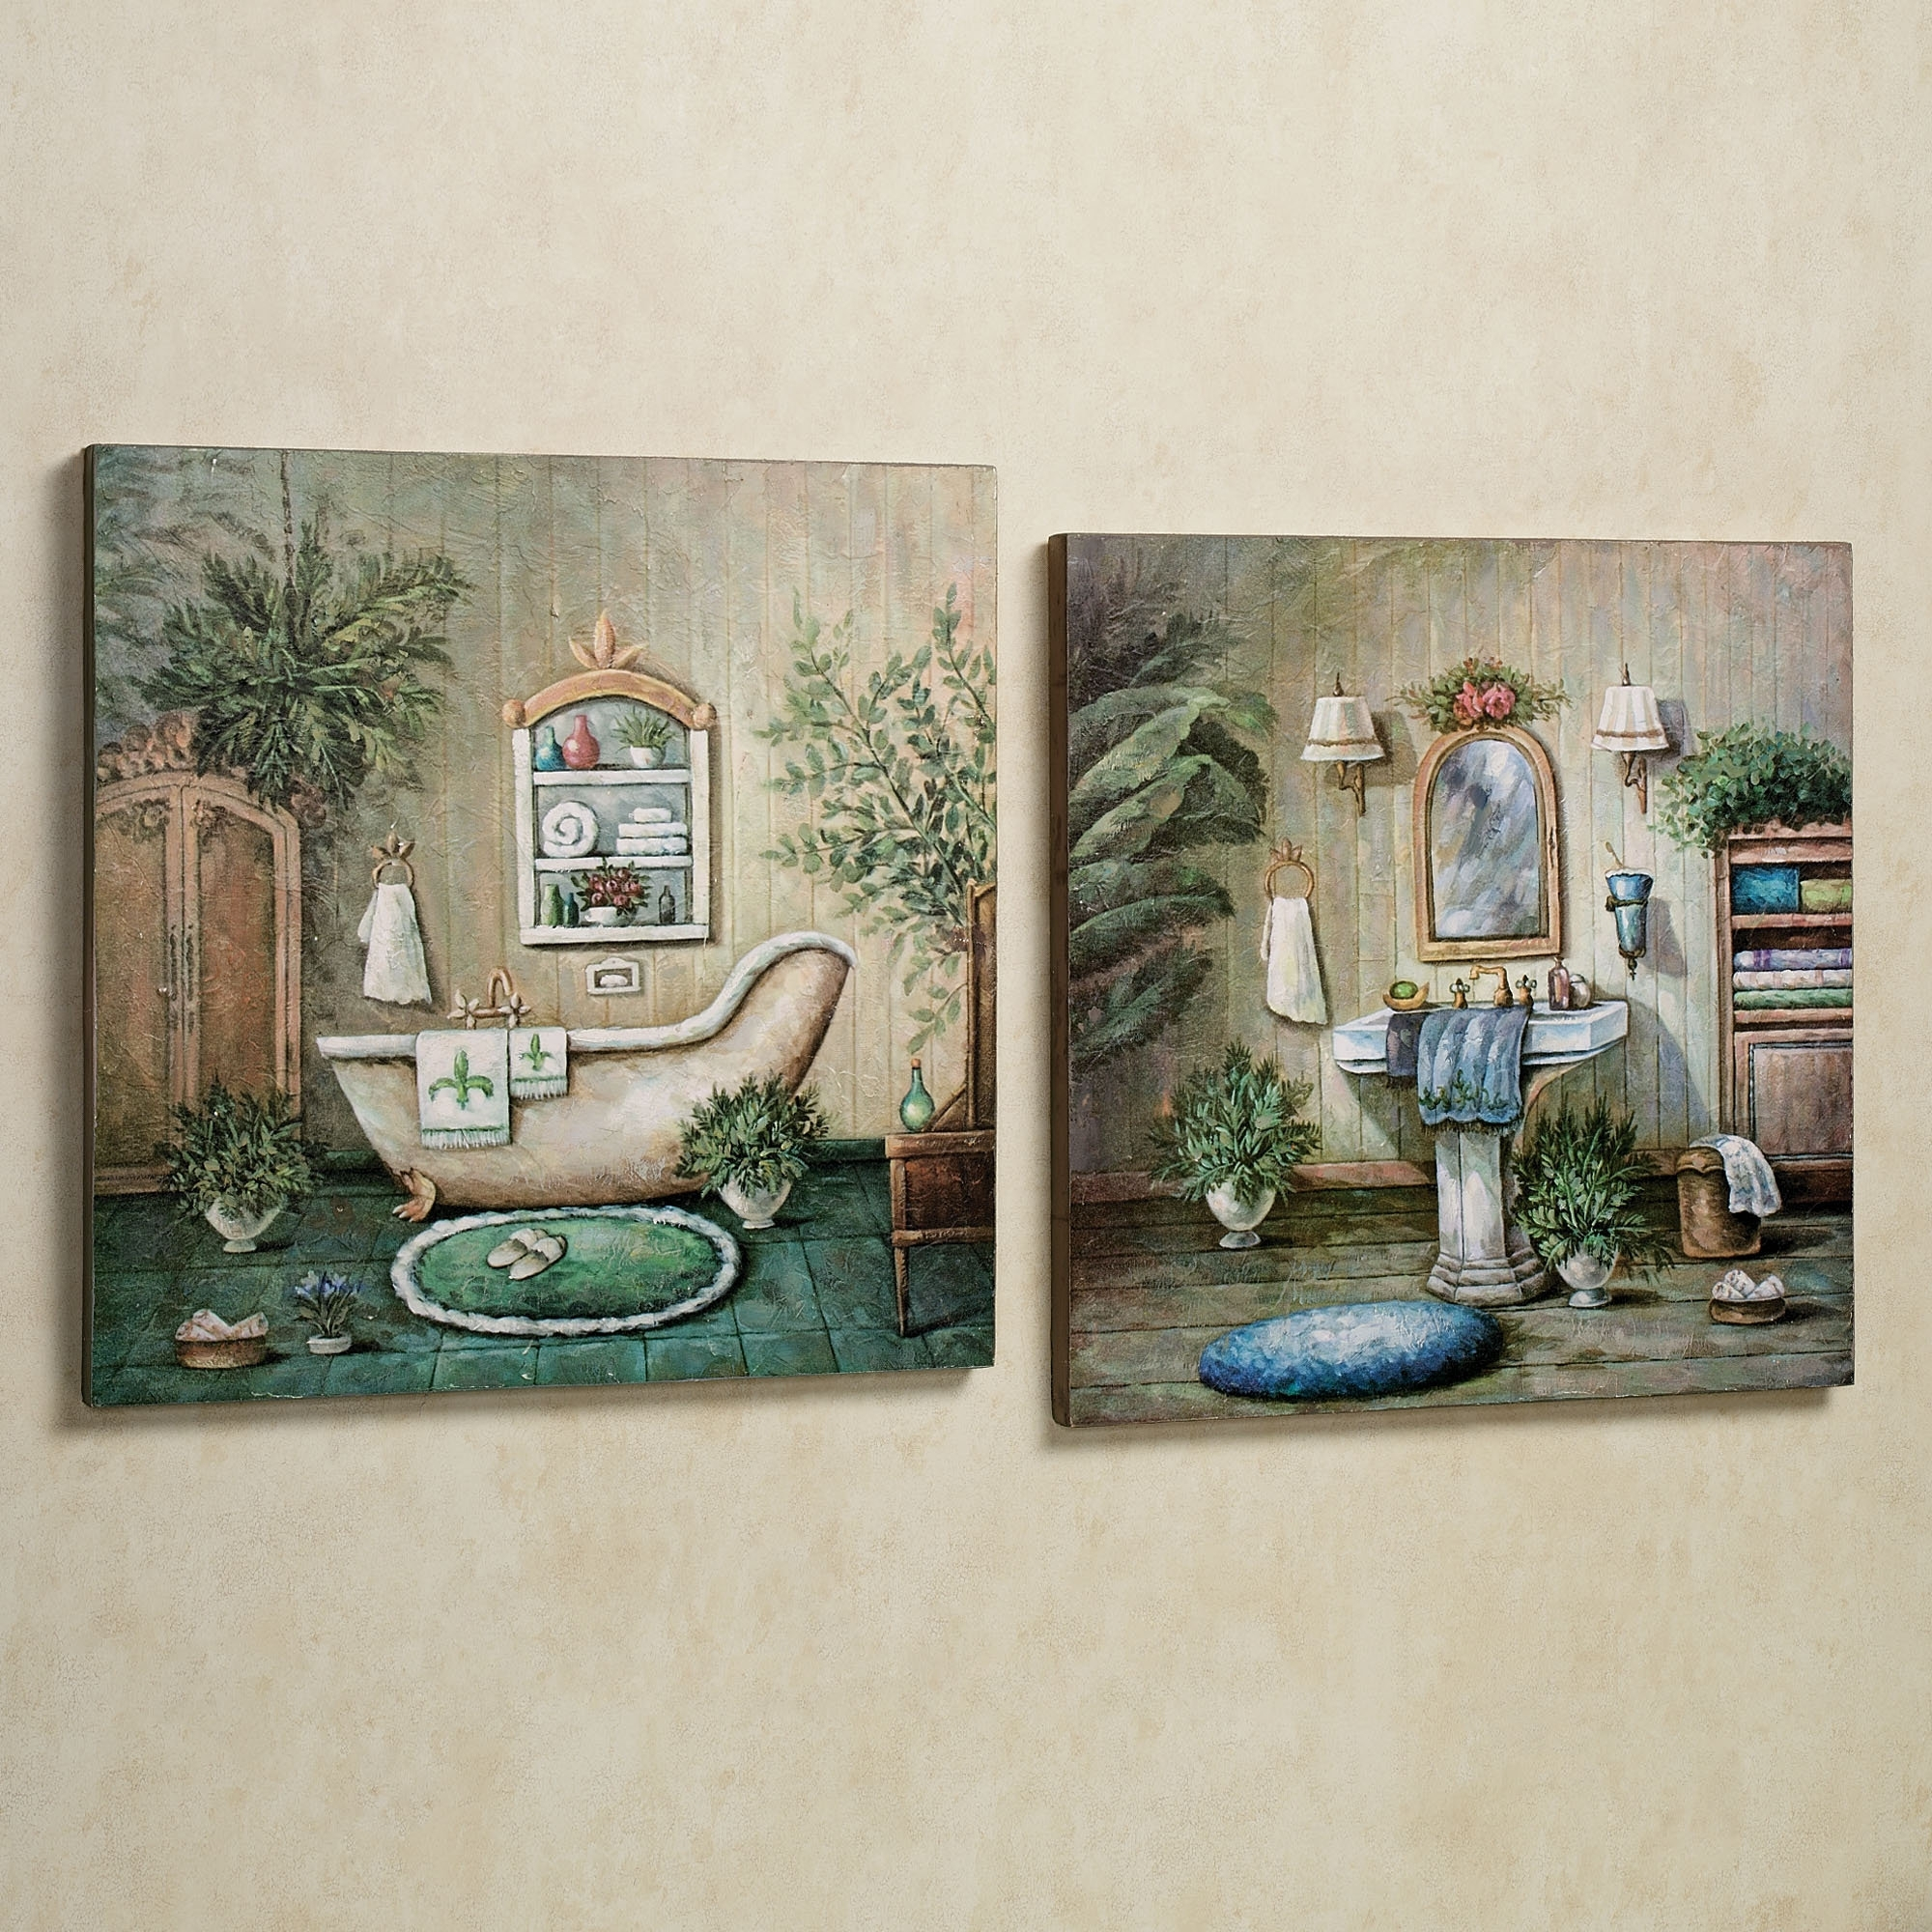 Blissful Bath Wooden Wall Art Plaque Set | Wall Decor | Pinterest With Regard To Most Up To Date Vintage Bath Framed Art Prints Set Of (View 9 of 15)